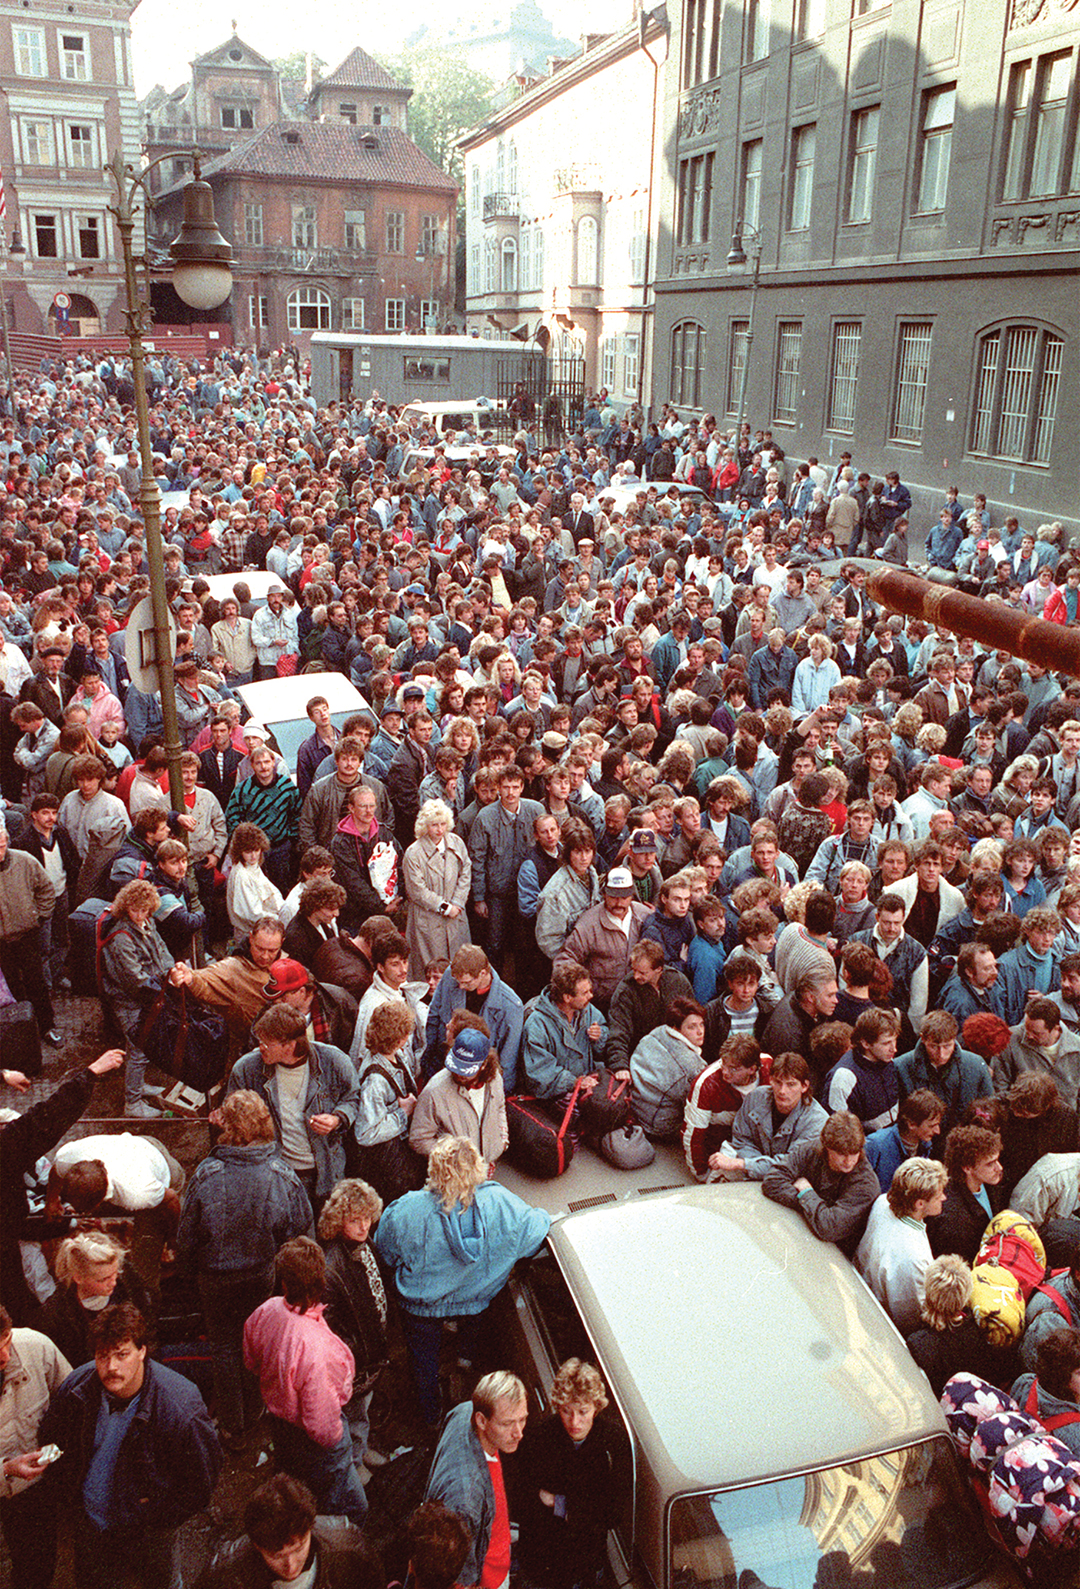 East German refugees penned behind barriers outside the West German Embassy in Prague in October 1989 wait to take a special train to West Germany after East Germany lifted restrictions on emigration. [AFP/GETTY IMAGES]